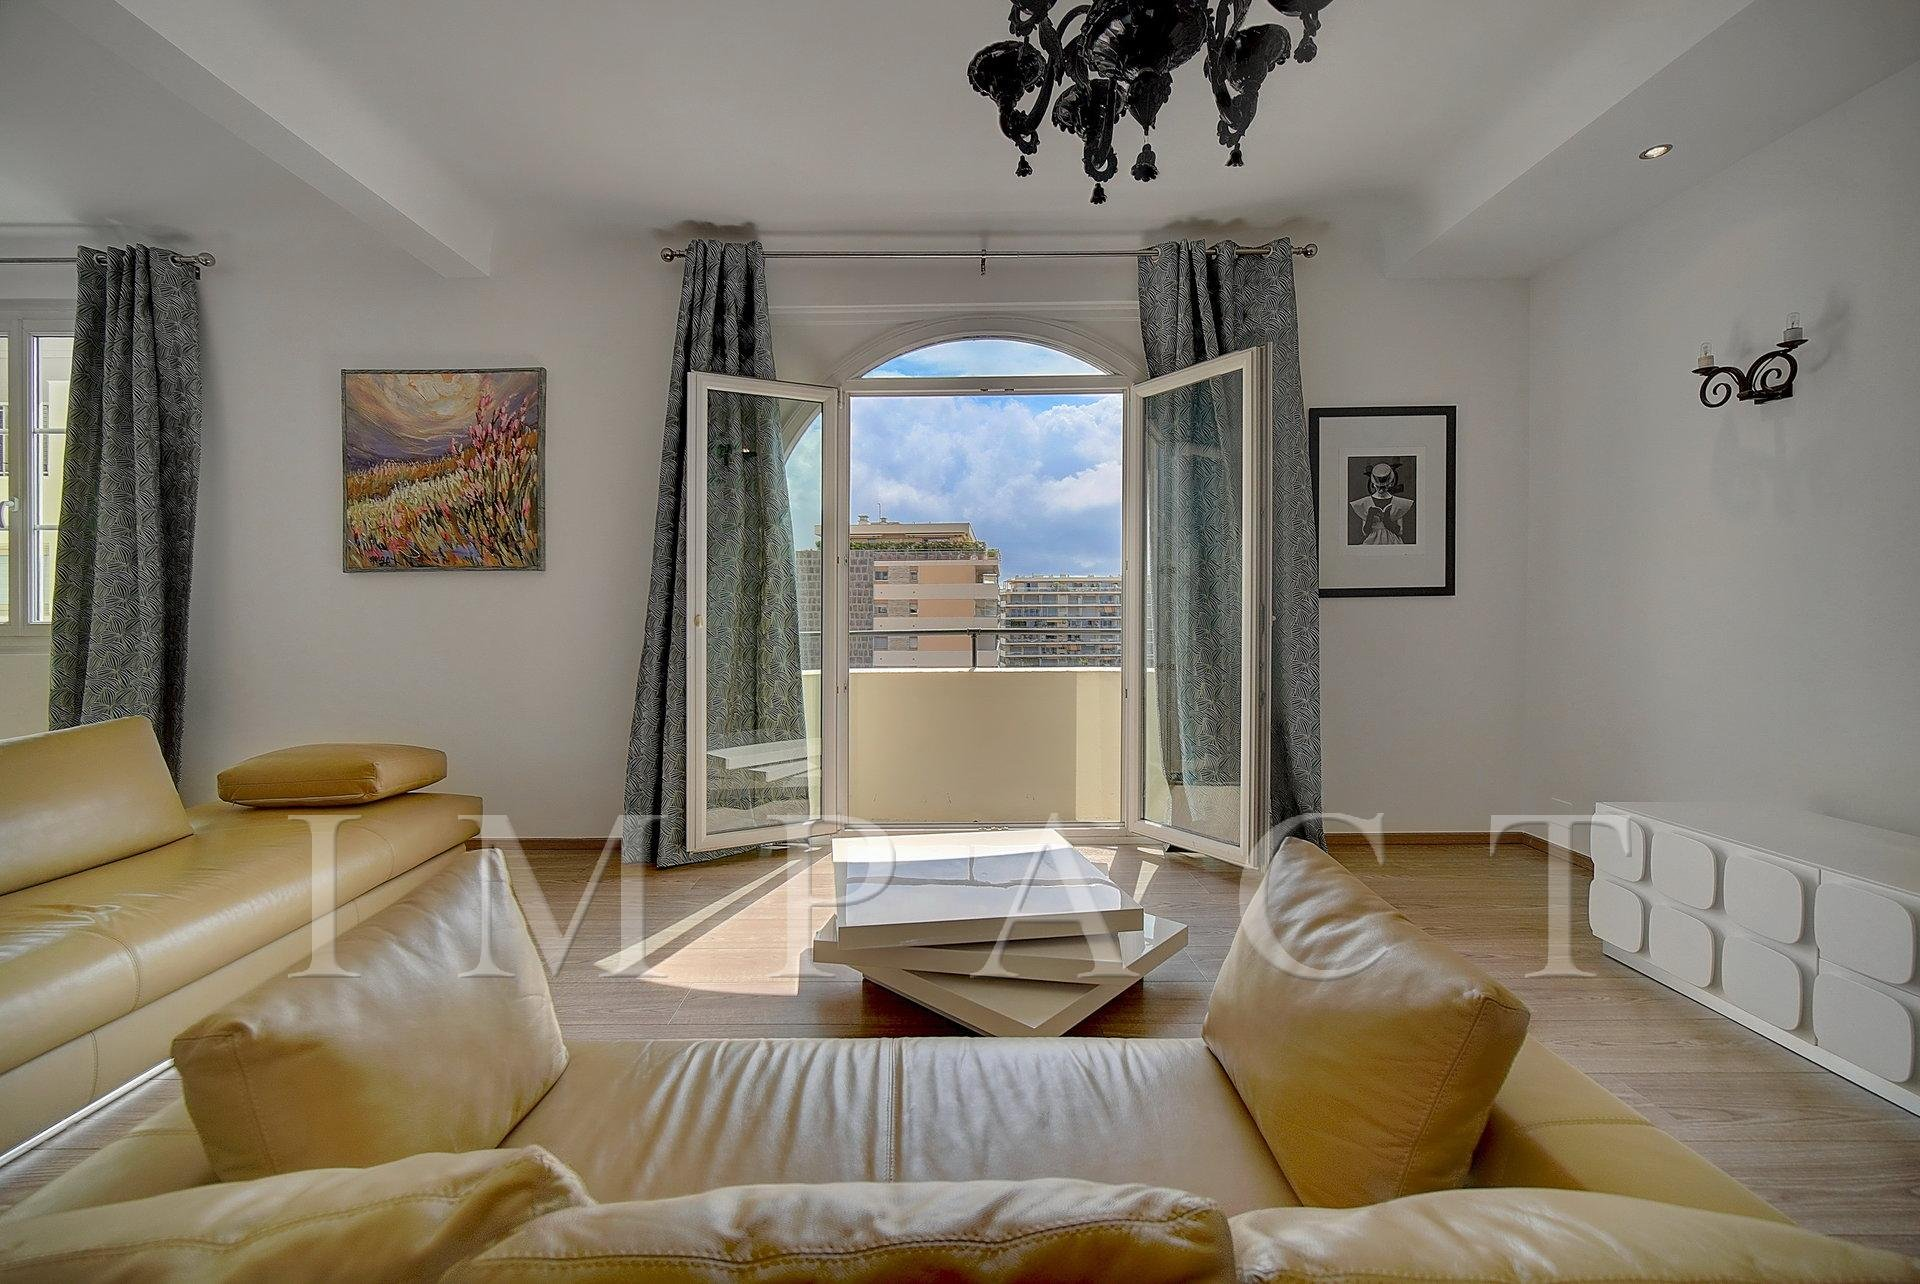 3 bedroom apartment to rent in Cannes